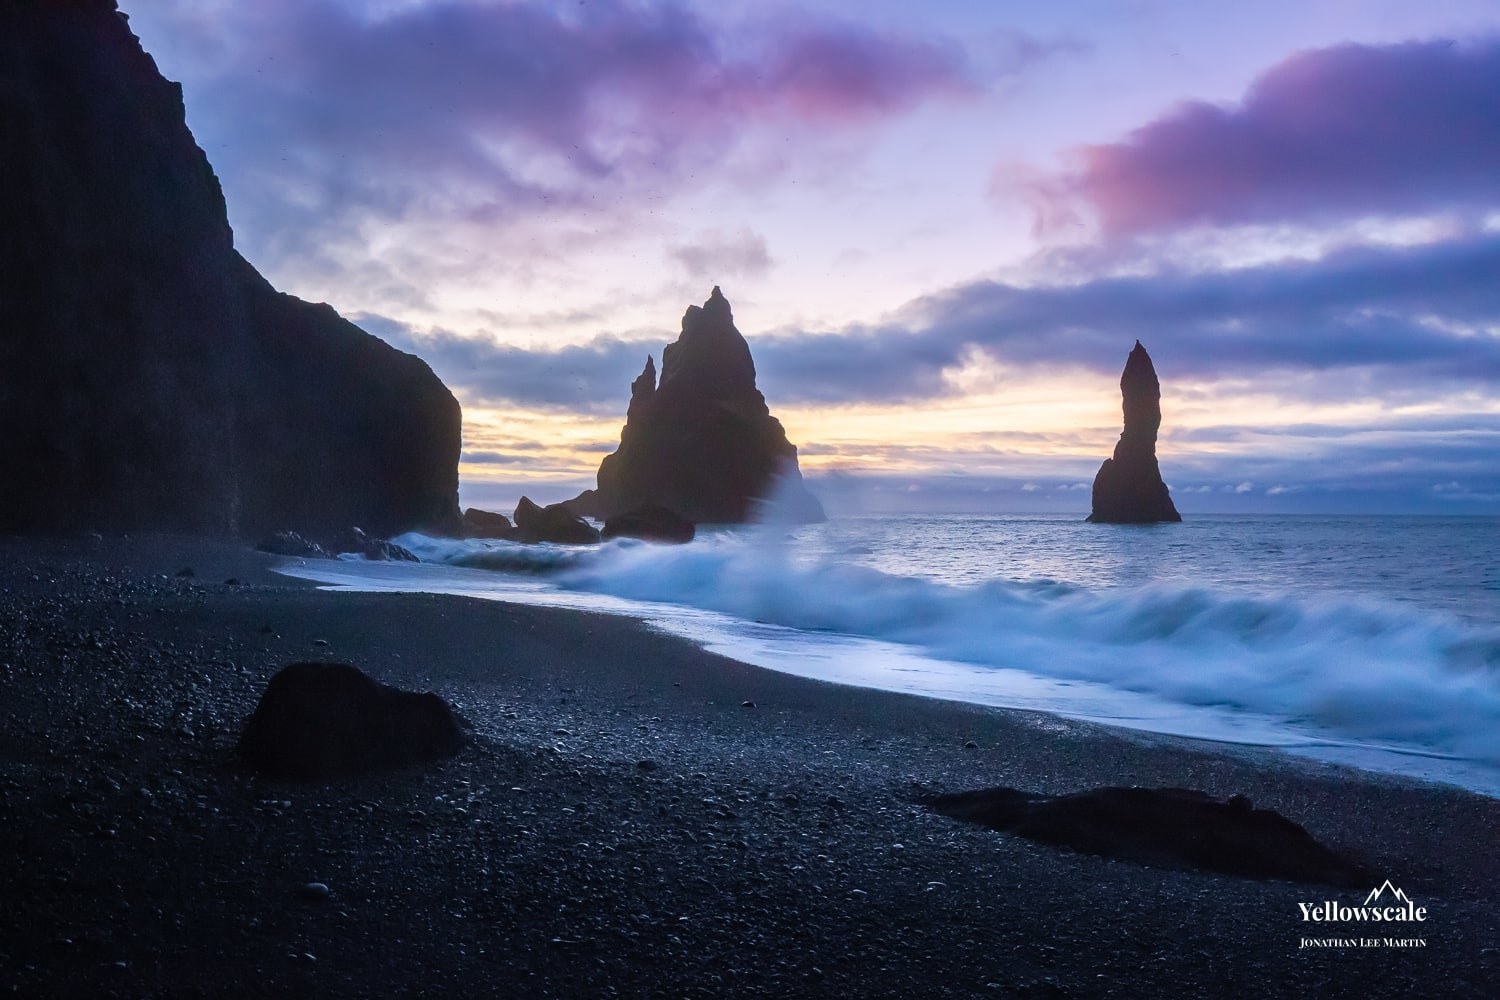 The sea stacks at Reynisfjara near Vik, Iceland